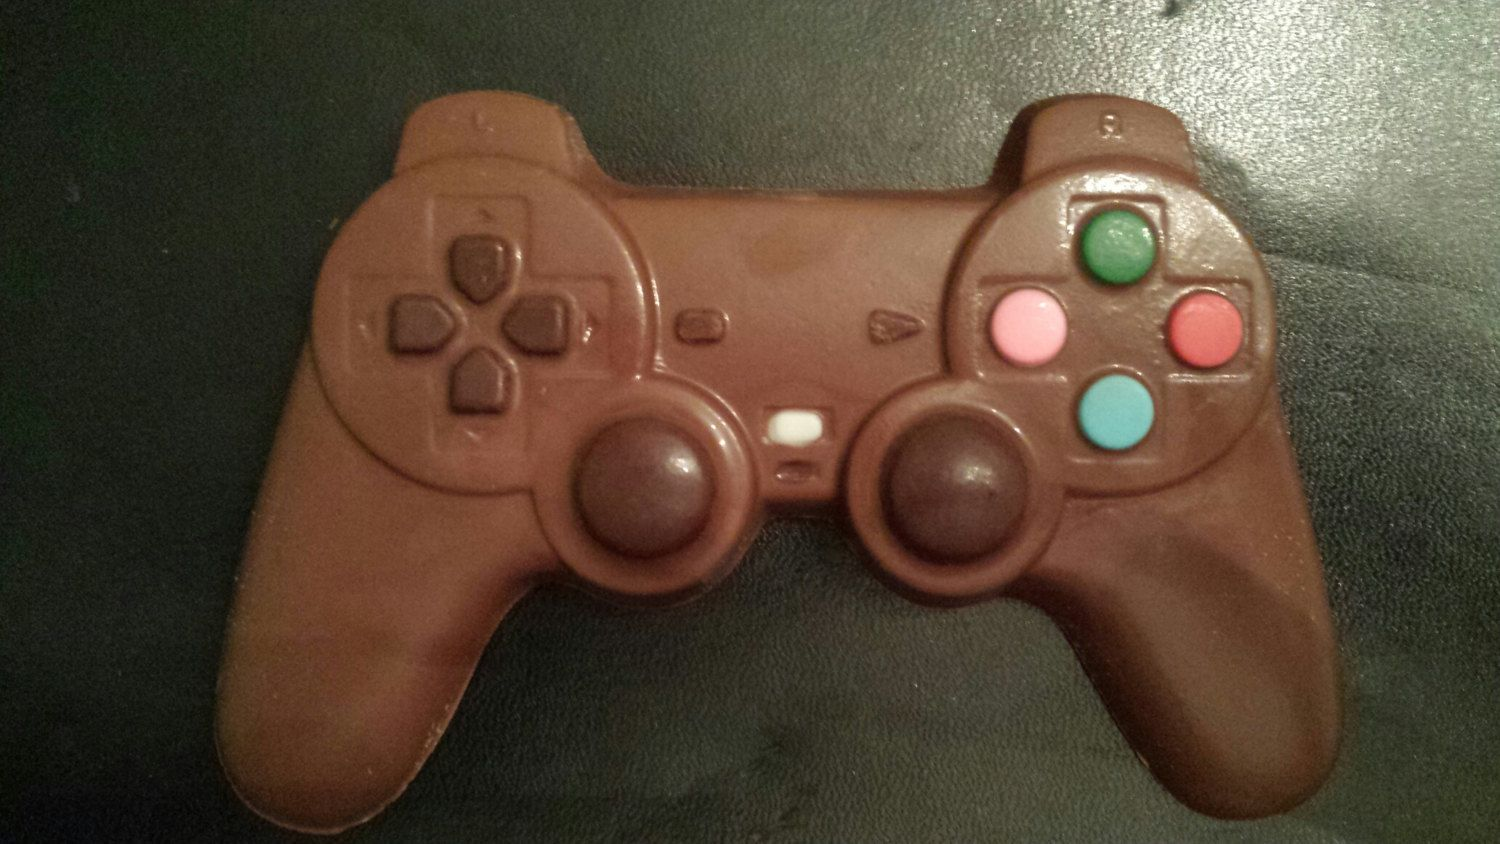 Chocolate PS3 Video Game Controller by DaisysChocolates on Etsy, $3.00